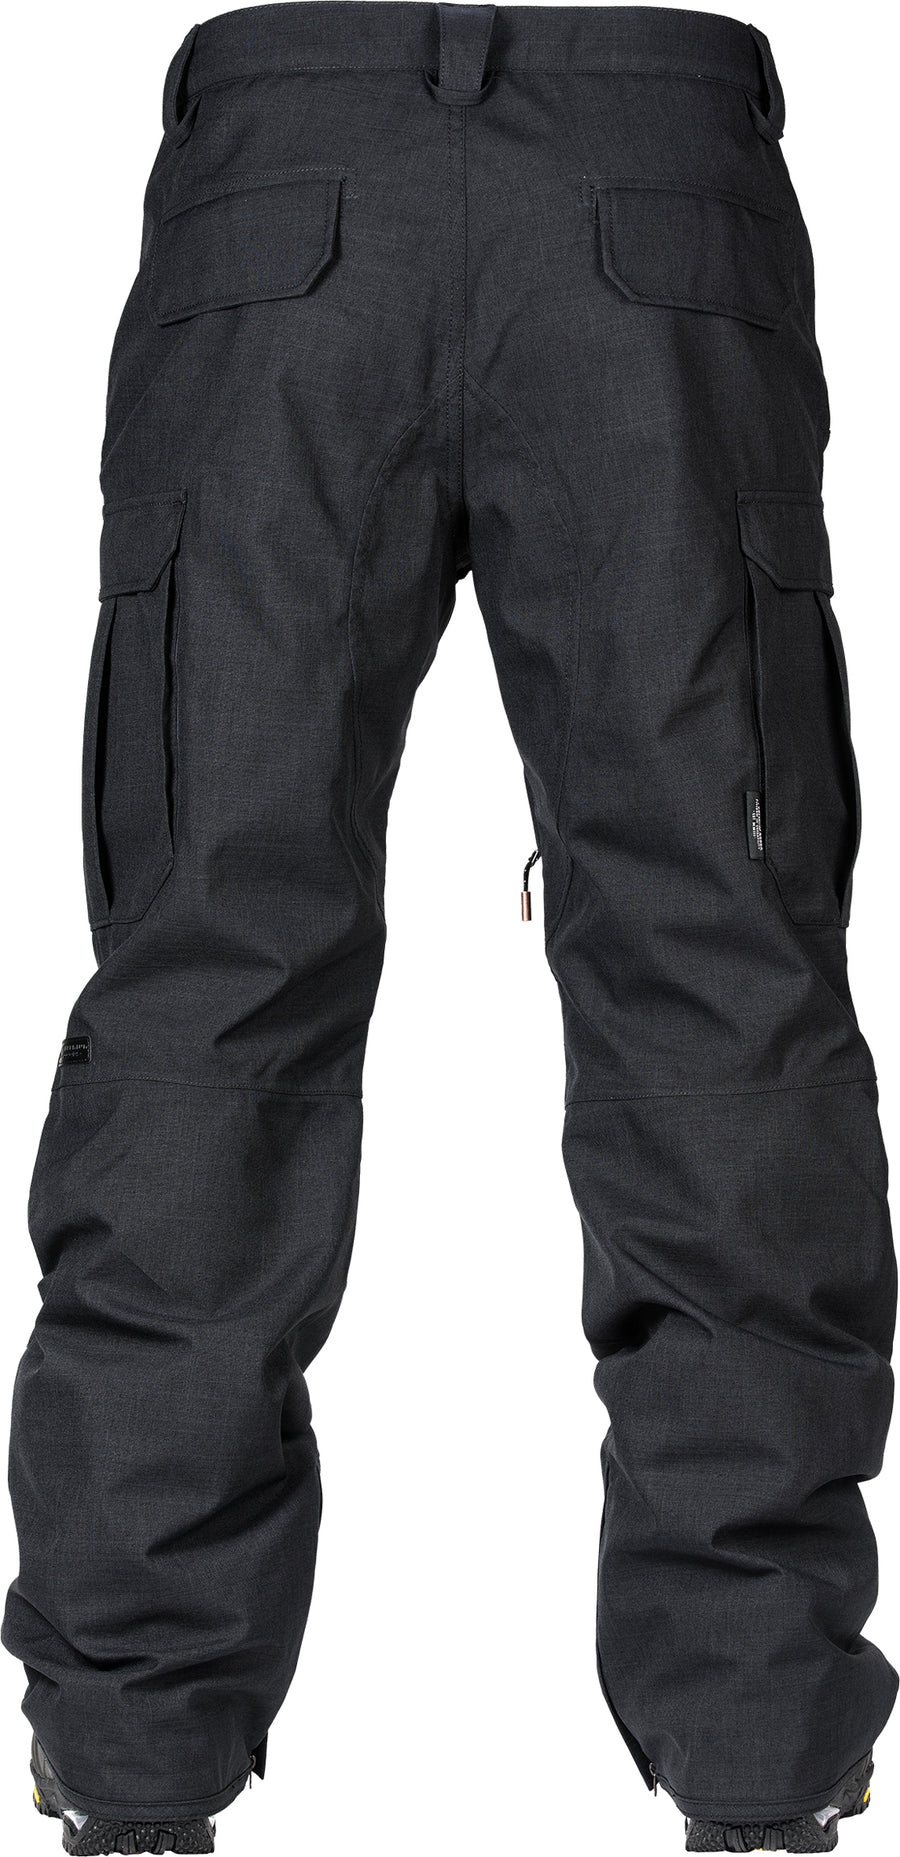 2021 L1 Brigade Snow Pant in Black